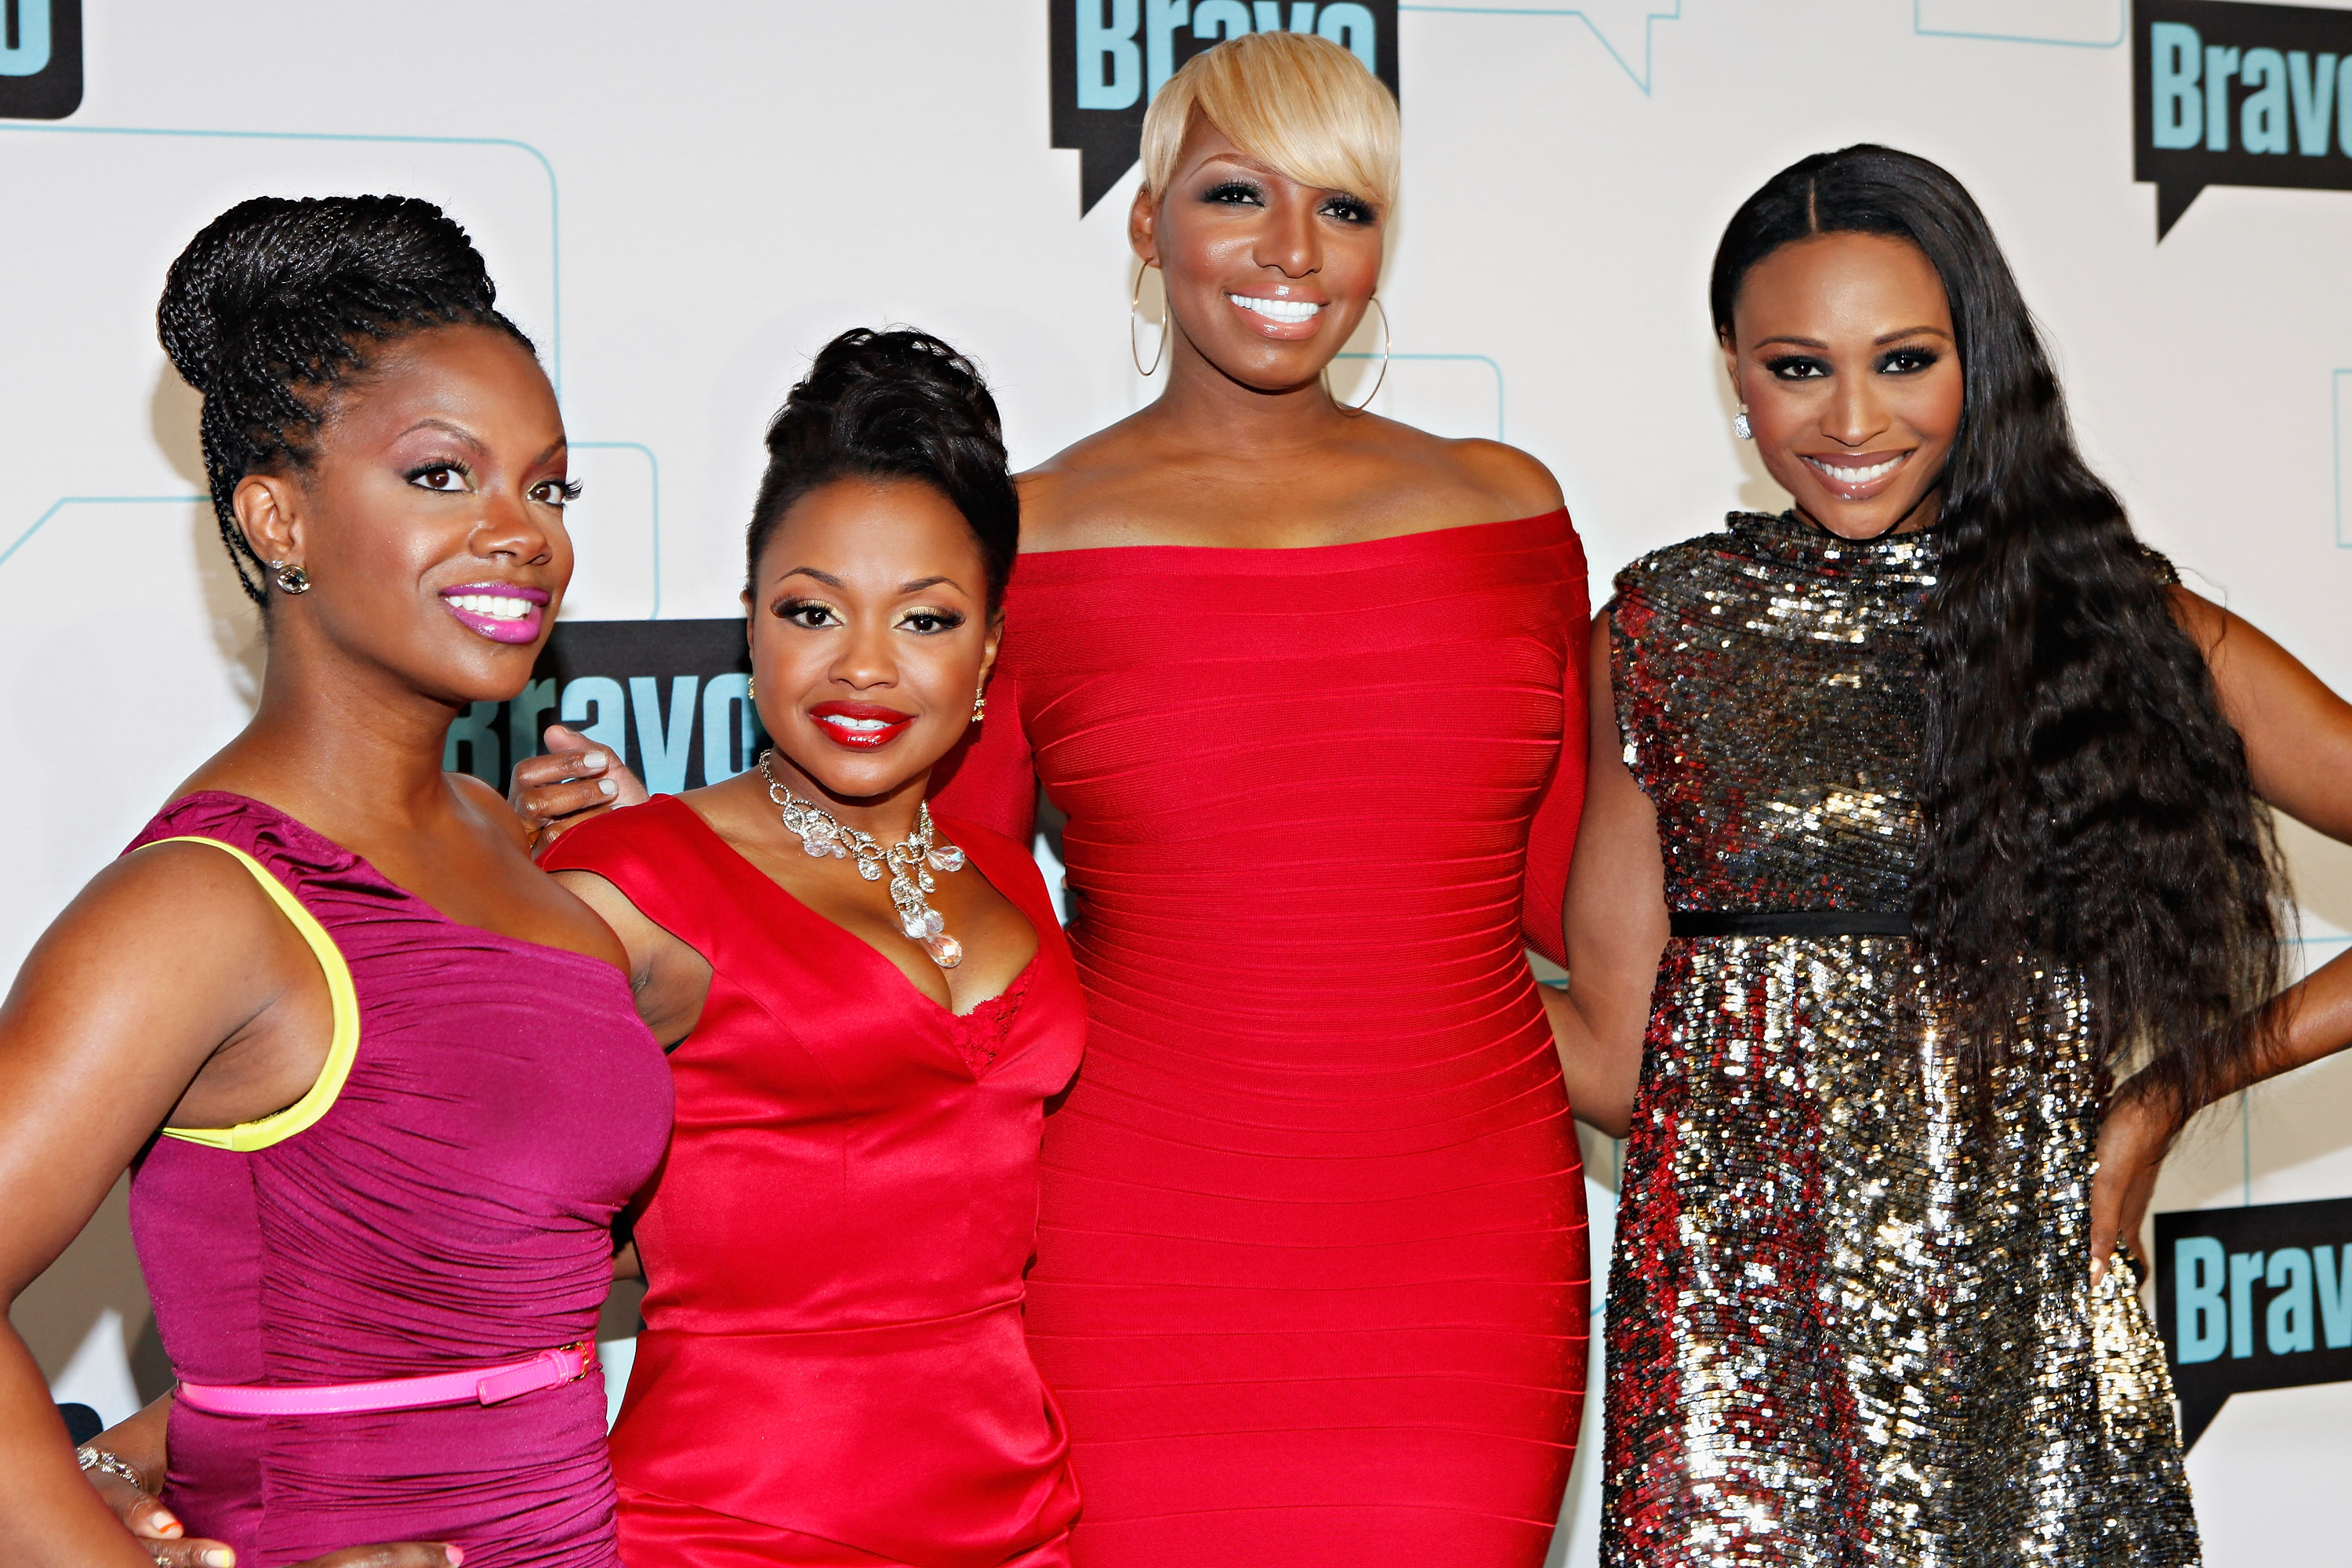 The Richest 'Real Housewives Of Atlanta' Star Is Definitely